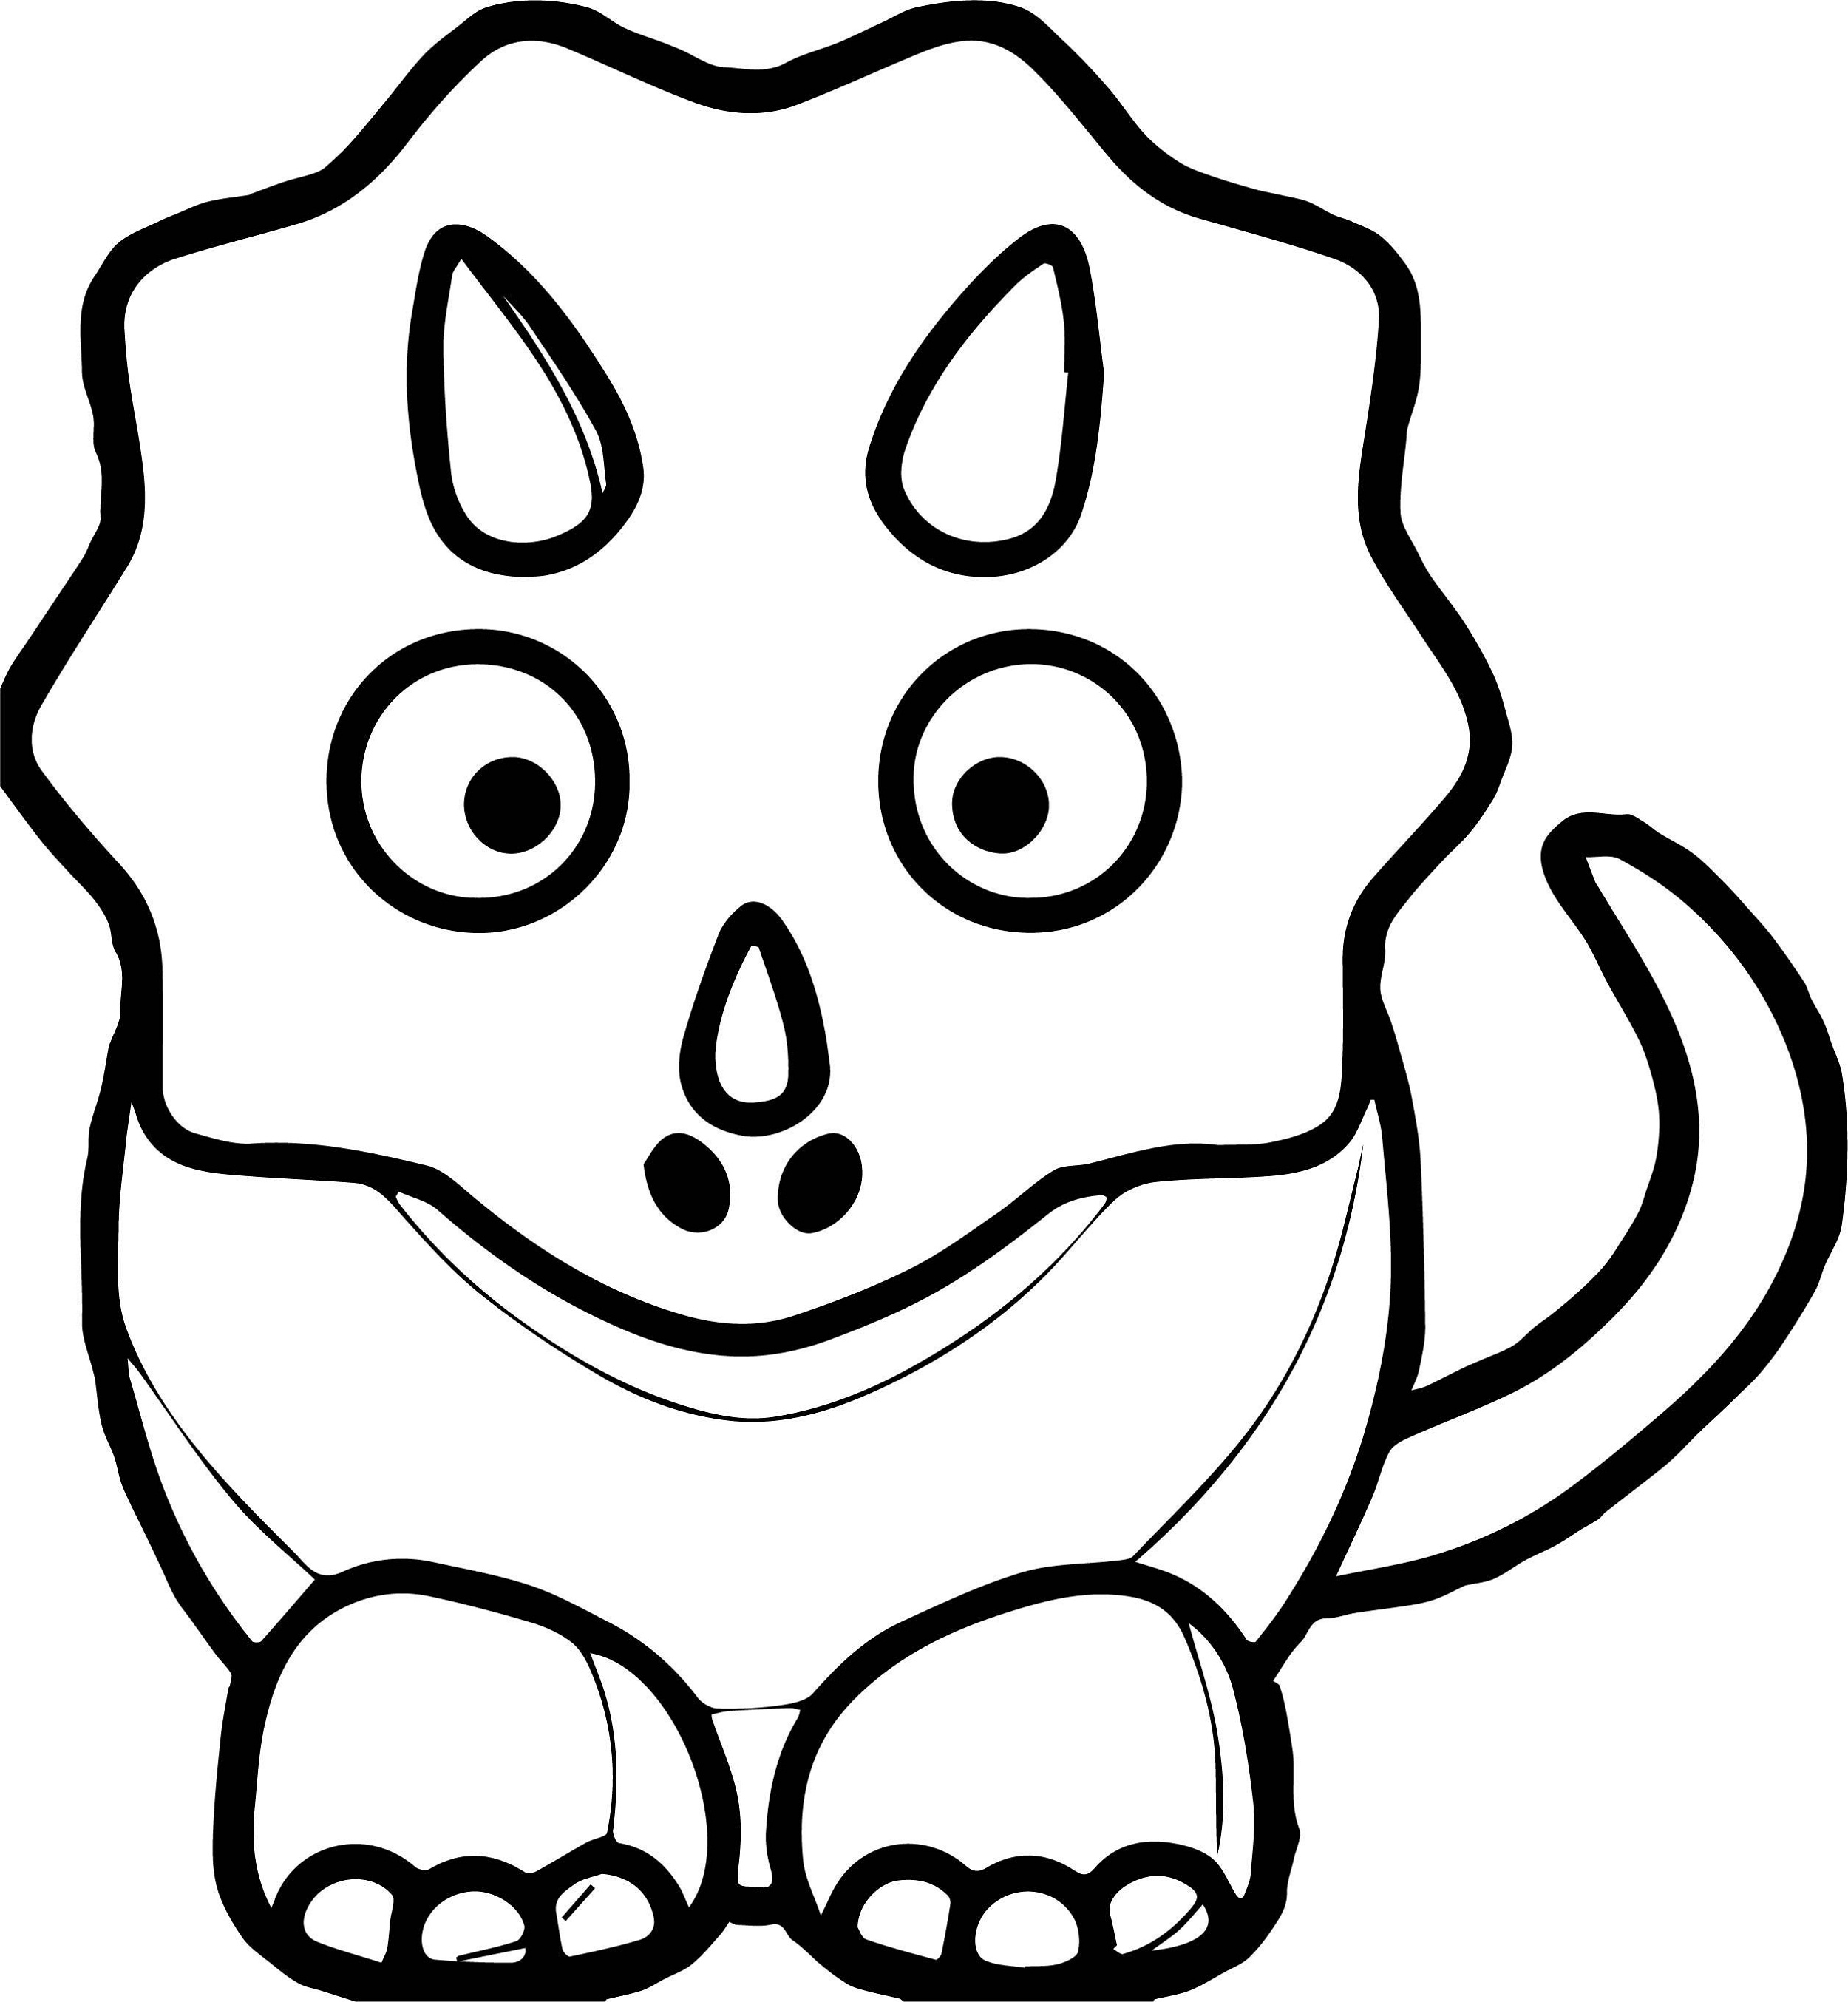 dinosaurs coloring page coloring pages dinosaur free printable coloring pages coloring dinosaurs page